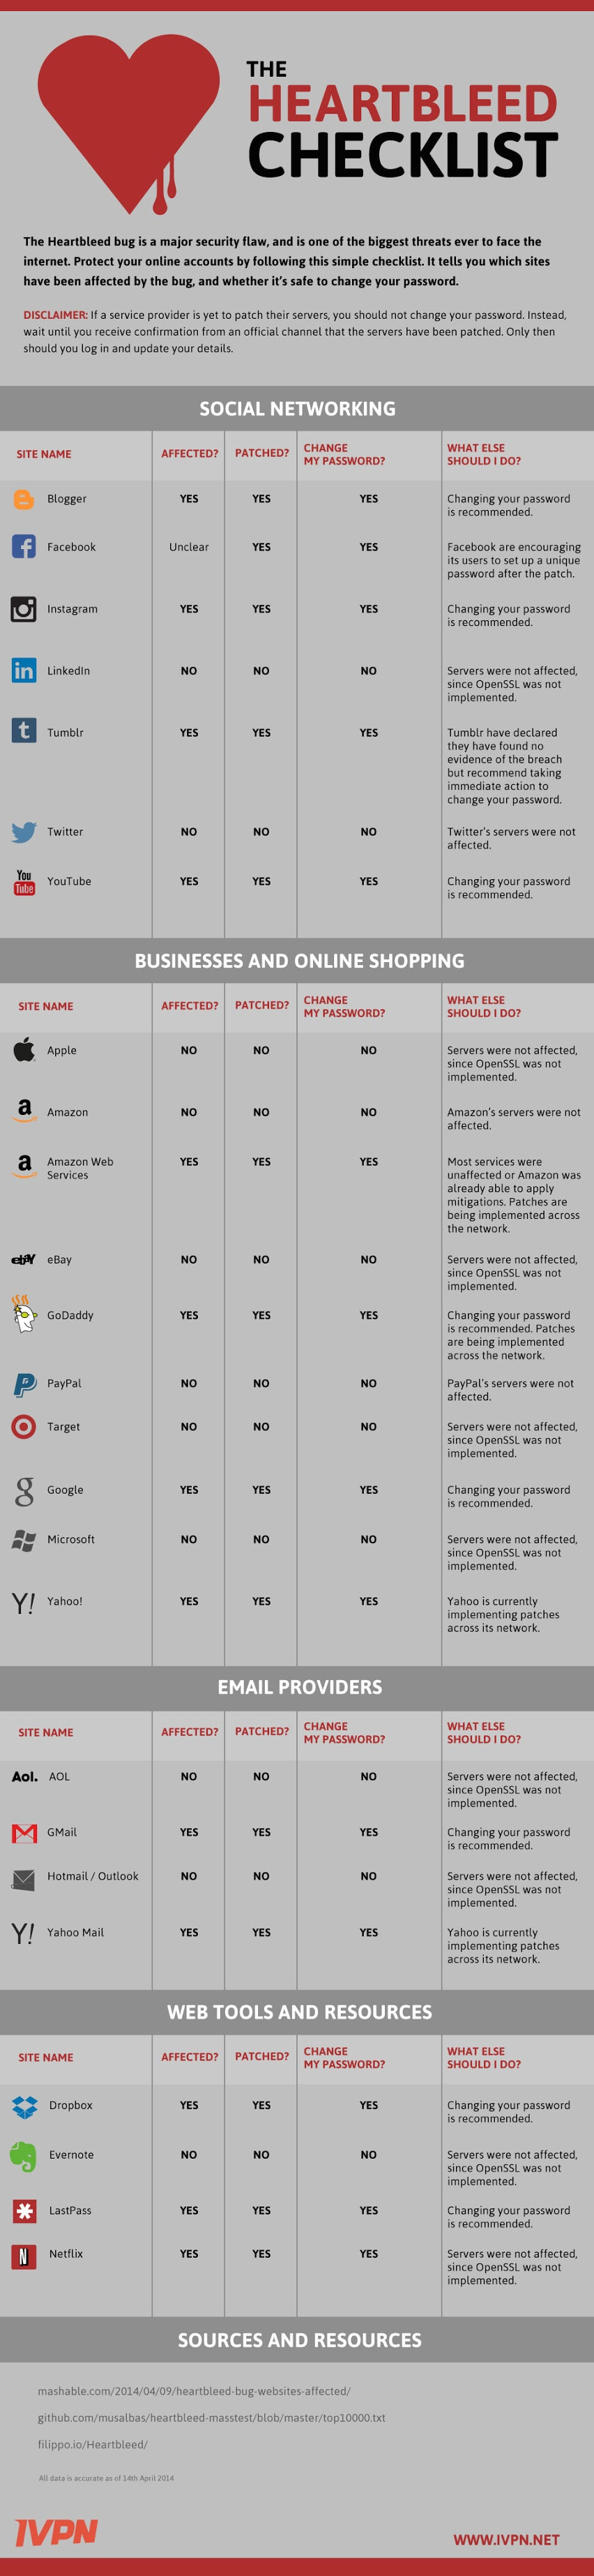 DigitalClimber-Heartbleed-infographic